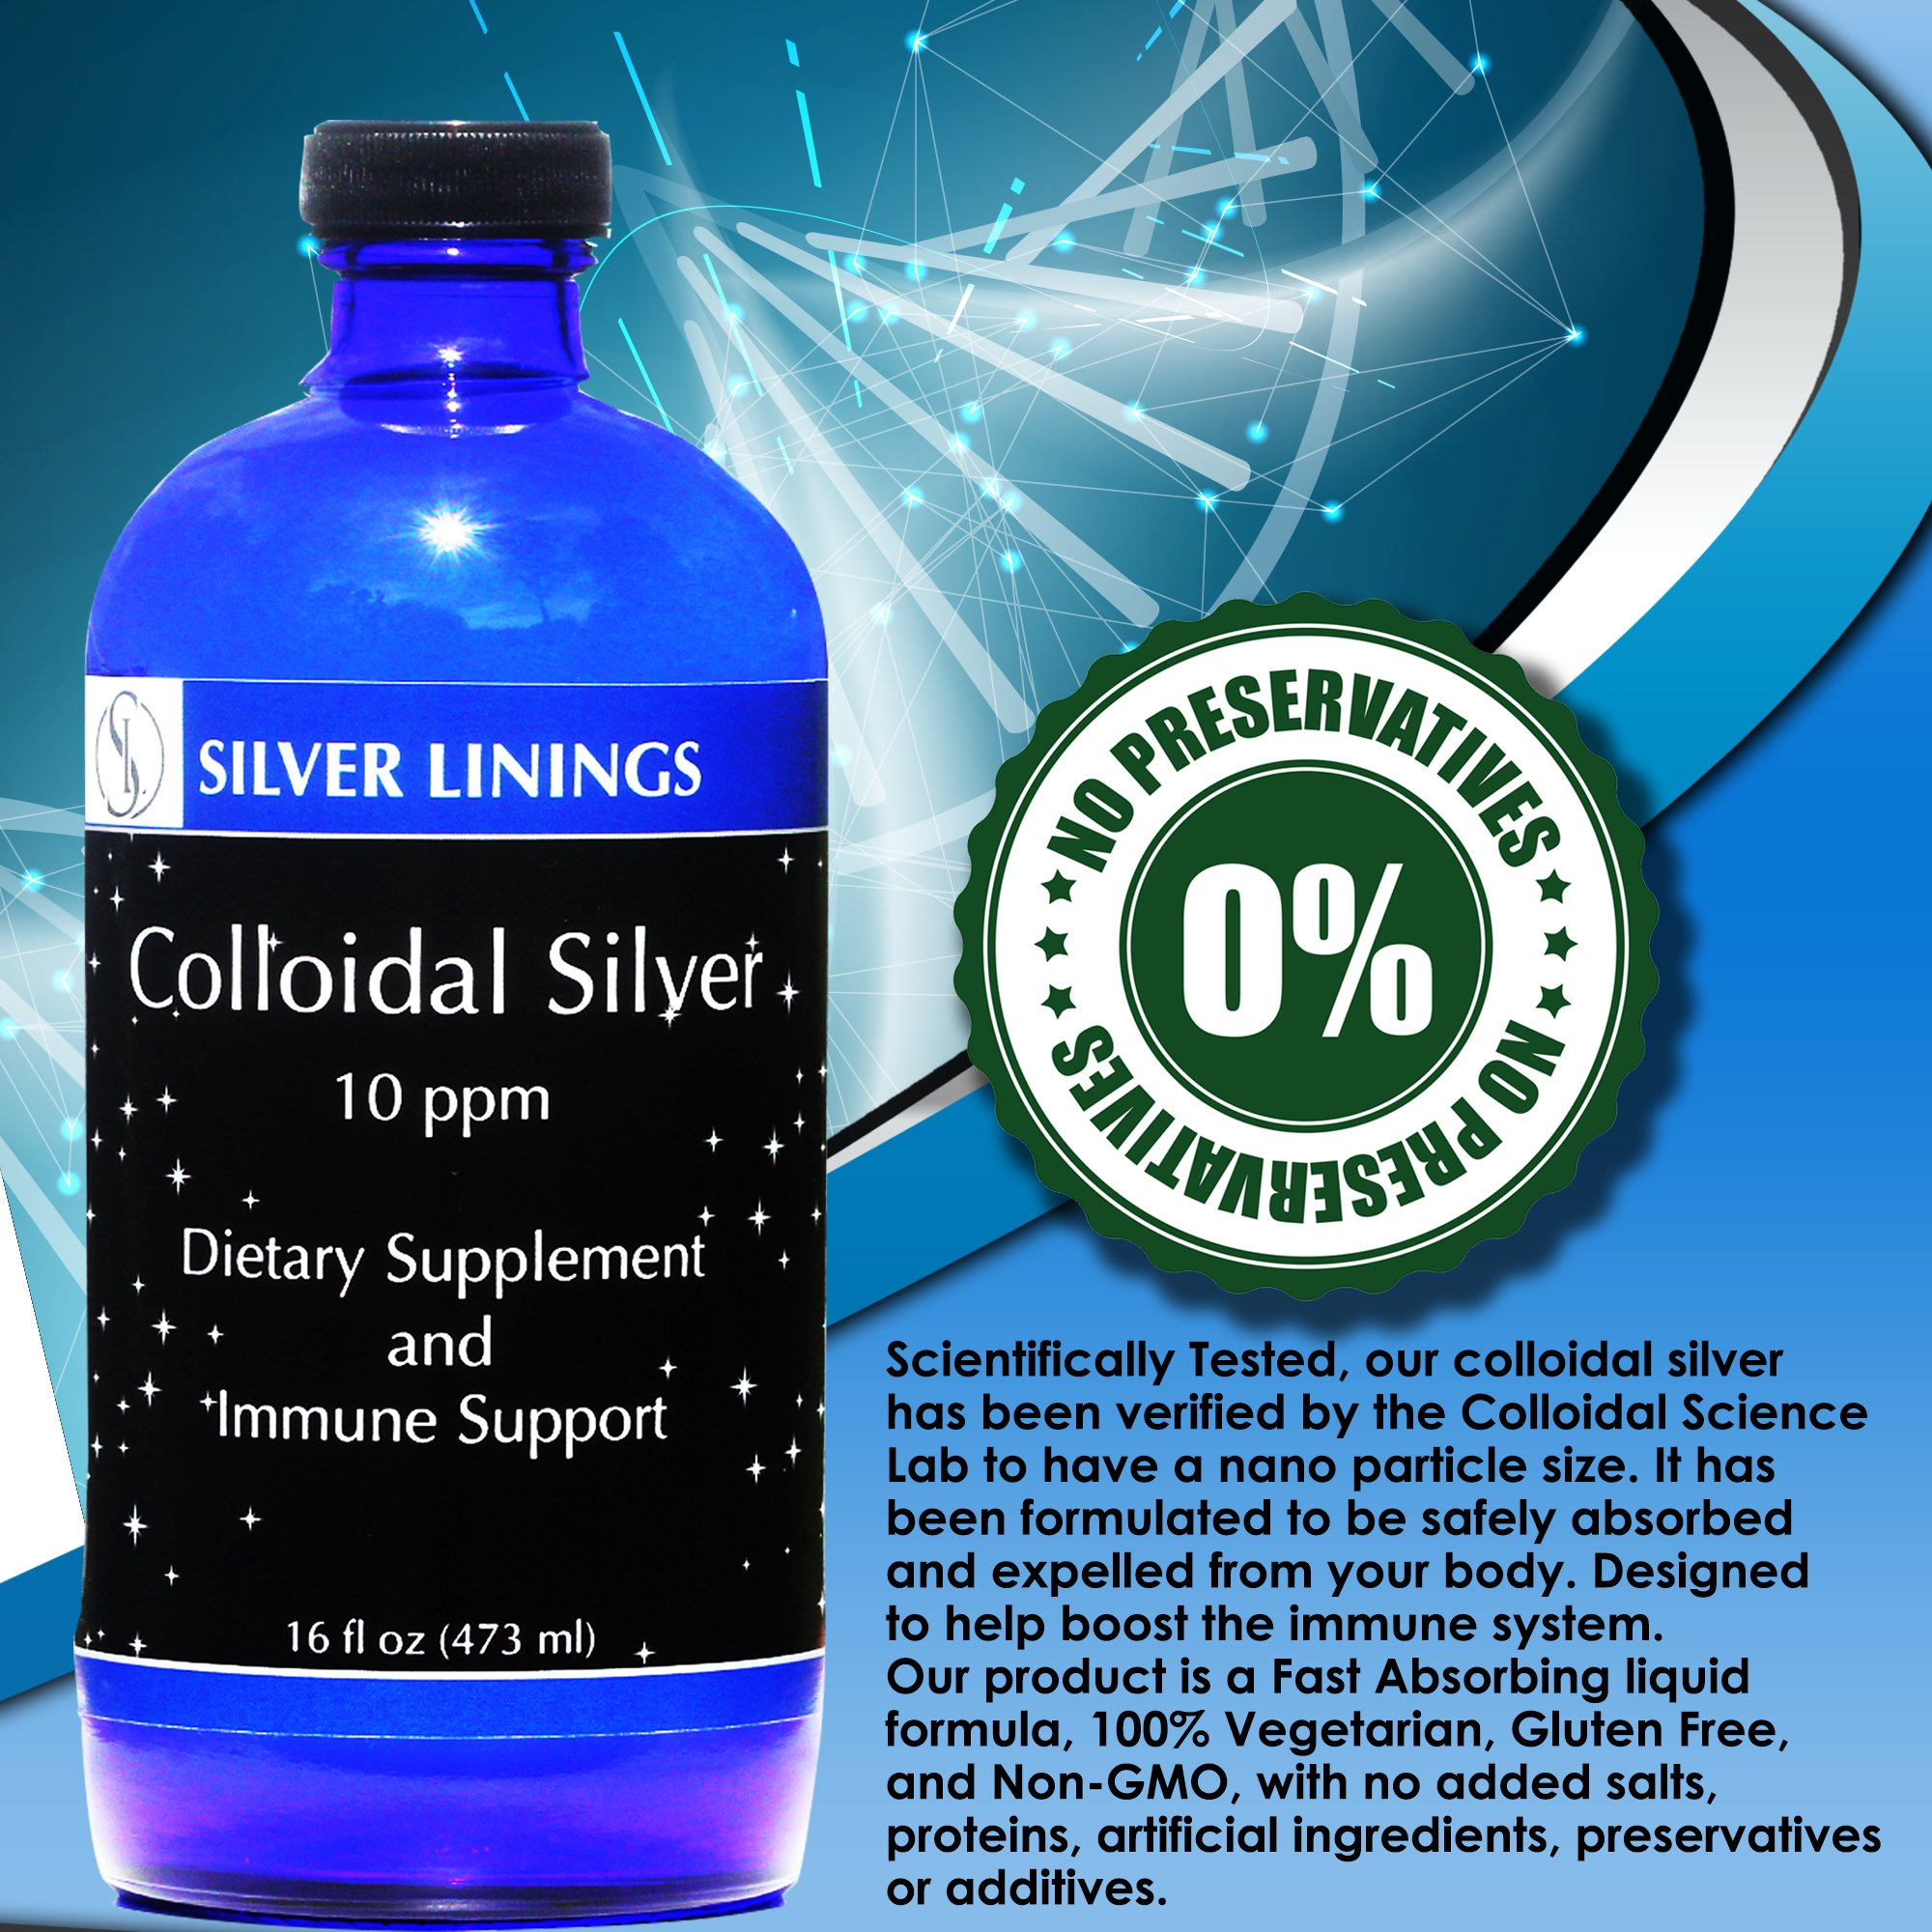 Silver Linings Colloidal Silver Hydrosol, 10 PPM, A Powerful Natural Antibiotic, and Preventative Measure Against Infection, Immune Support, Safe for Adults, Kids, Pets, and Plants, 16 oz by Silver Linings (Image #5)